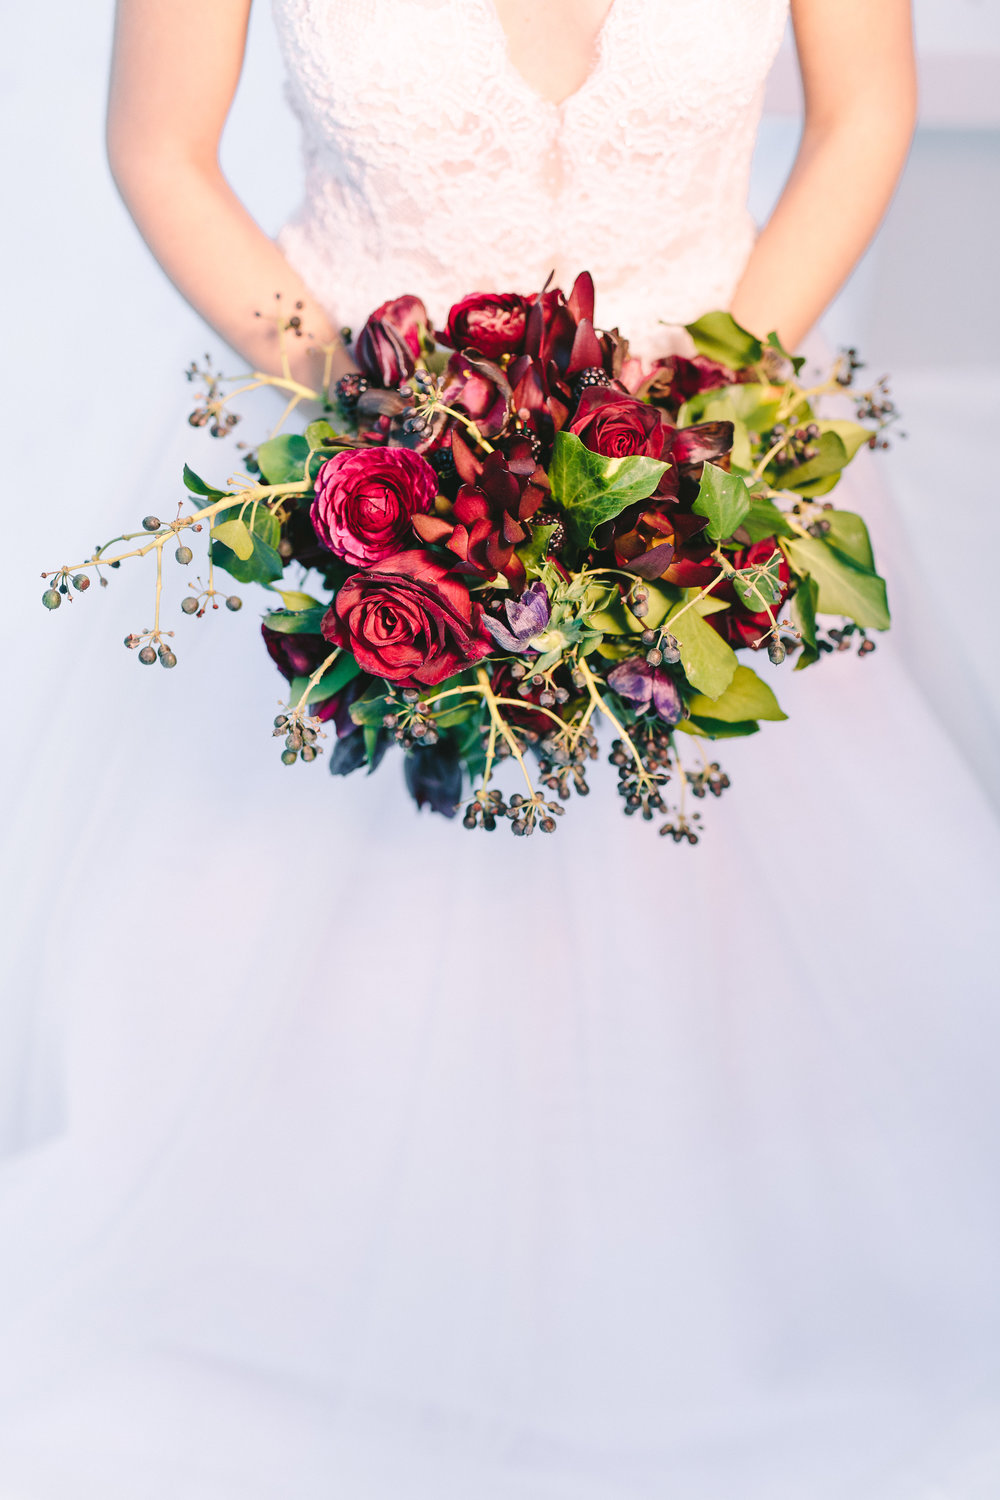 wedding-bouquet-design-red-burgundy-roses-berries-greenery-wedding-dress-lace-luxe